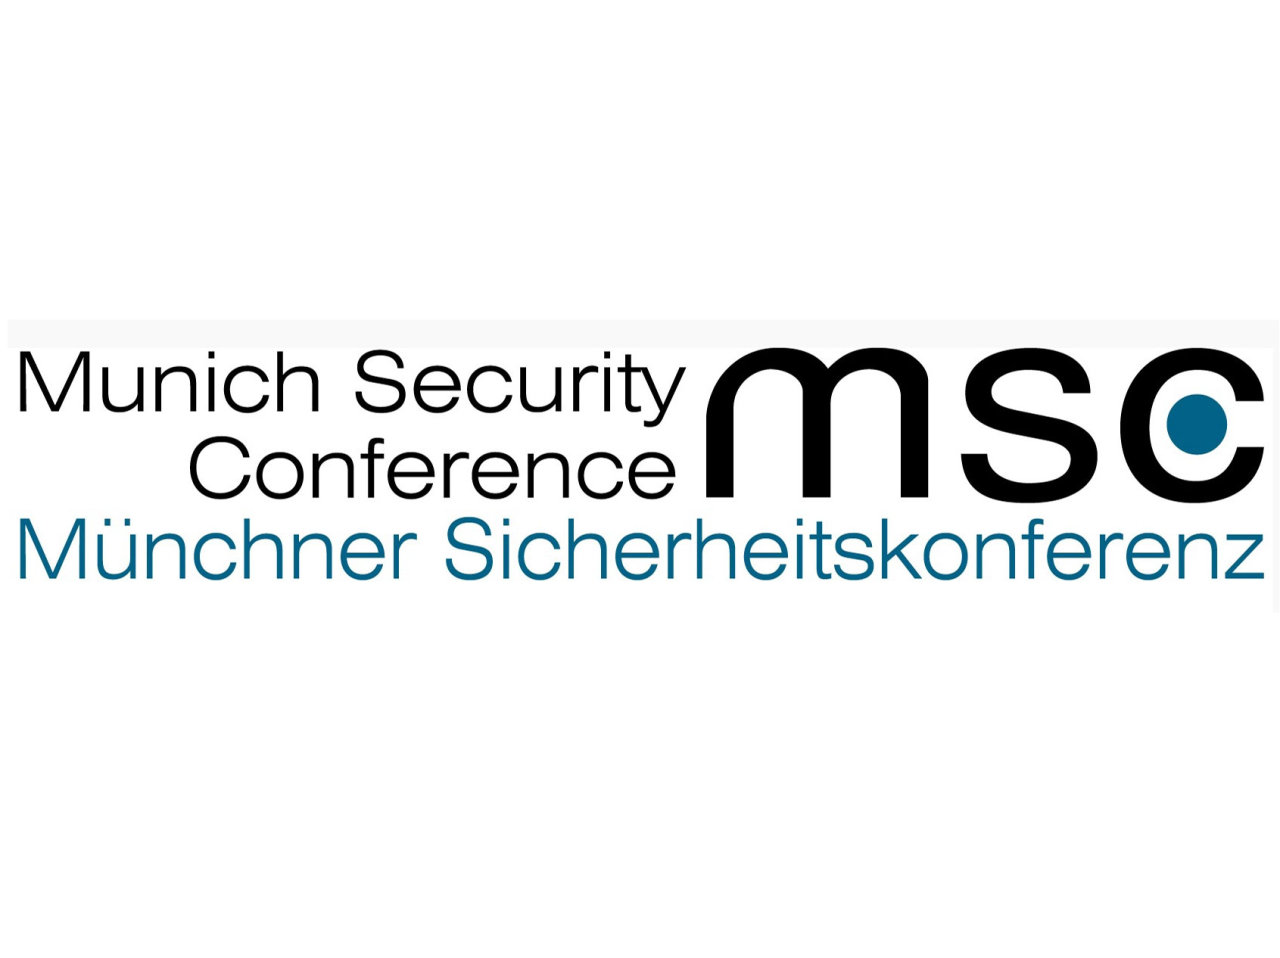 Iran invited to Munich security conference